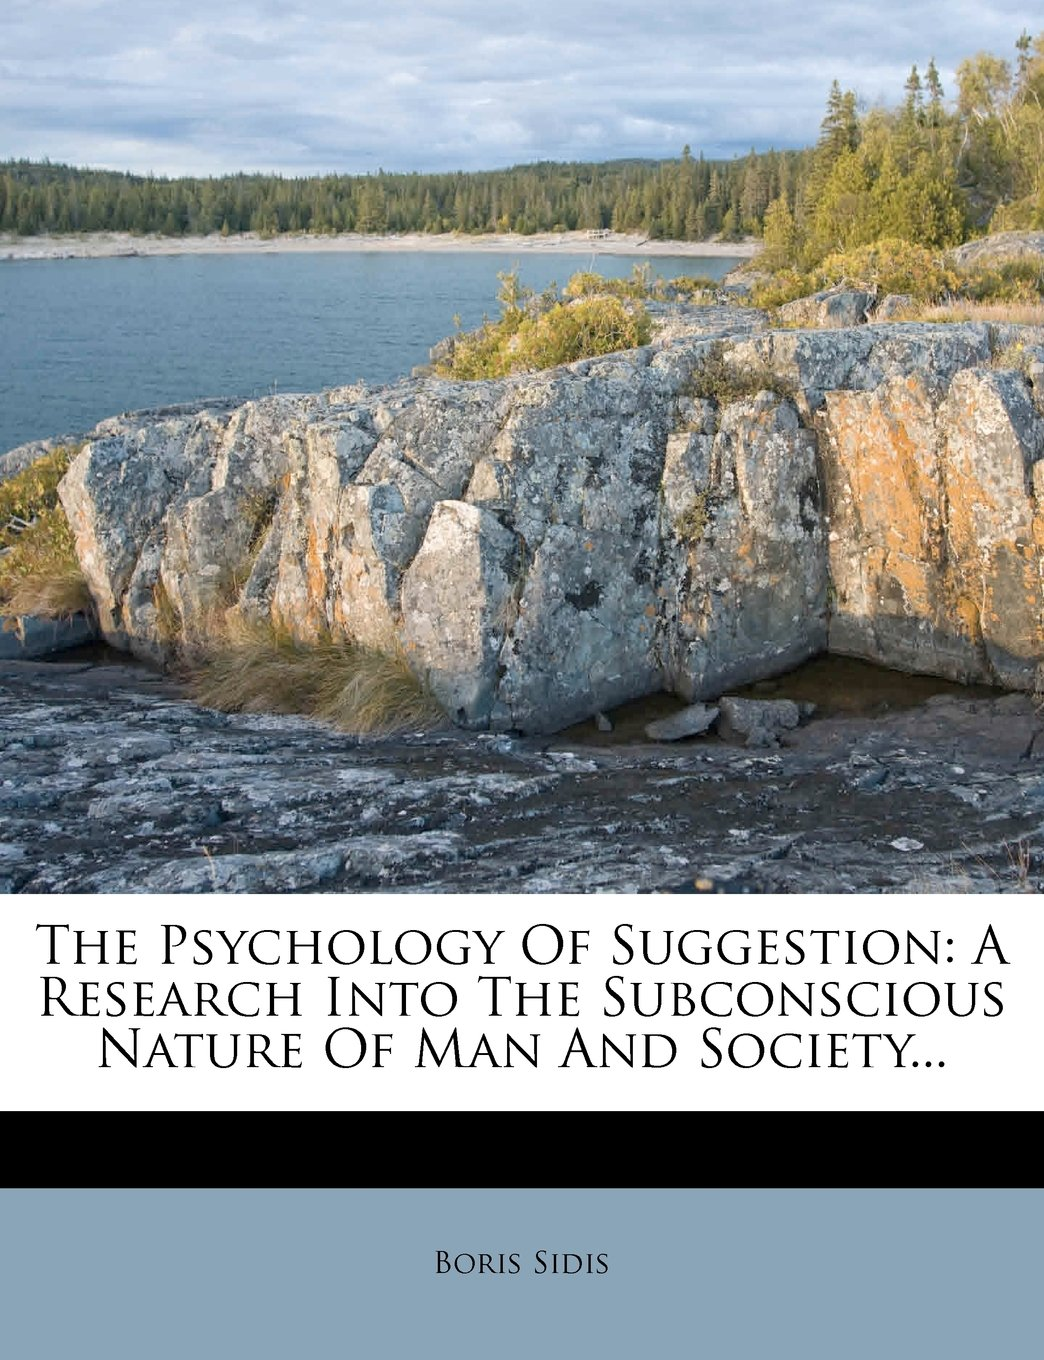 Read Online The Psychology Of Suggestion: A Research Into The Subconscious Nature Of Man And Society... PDF